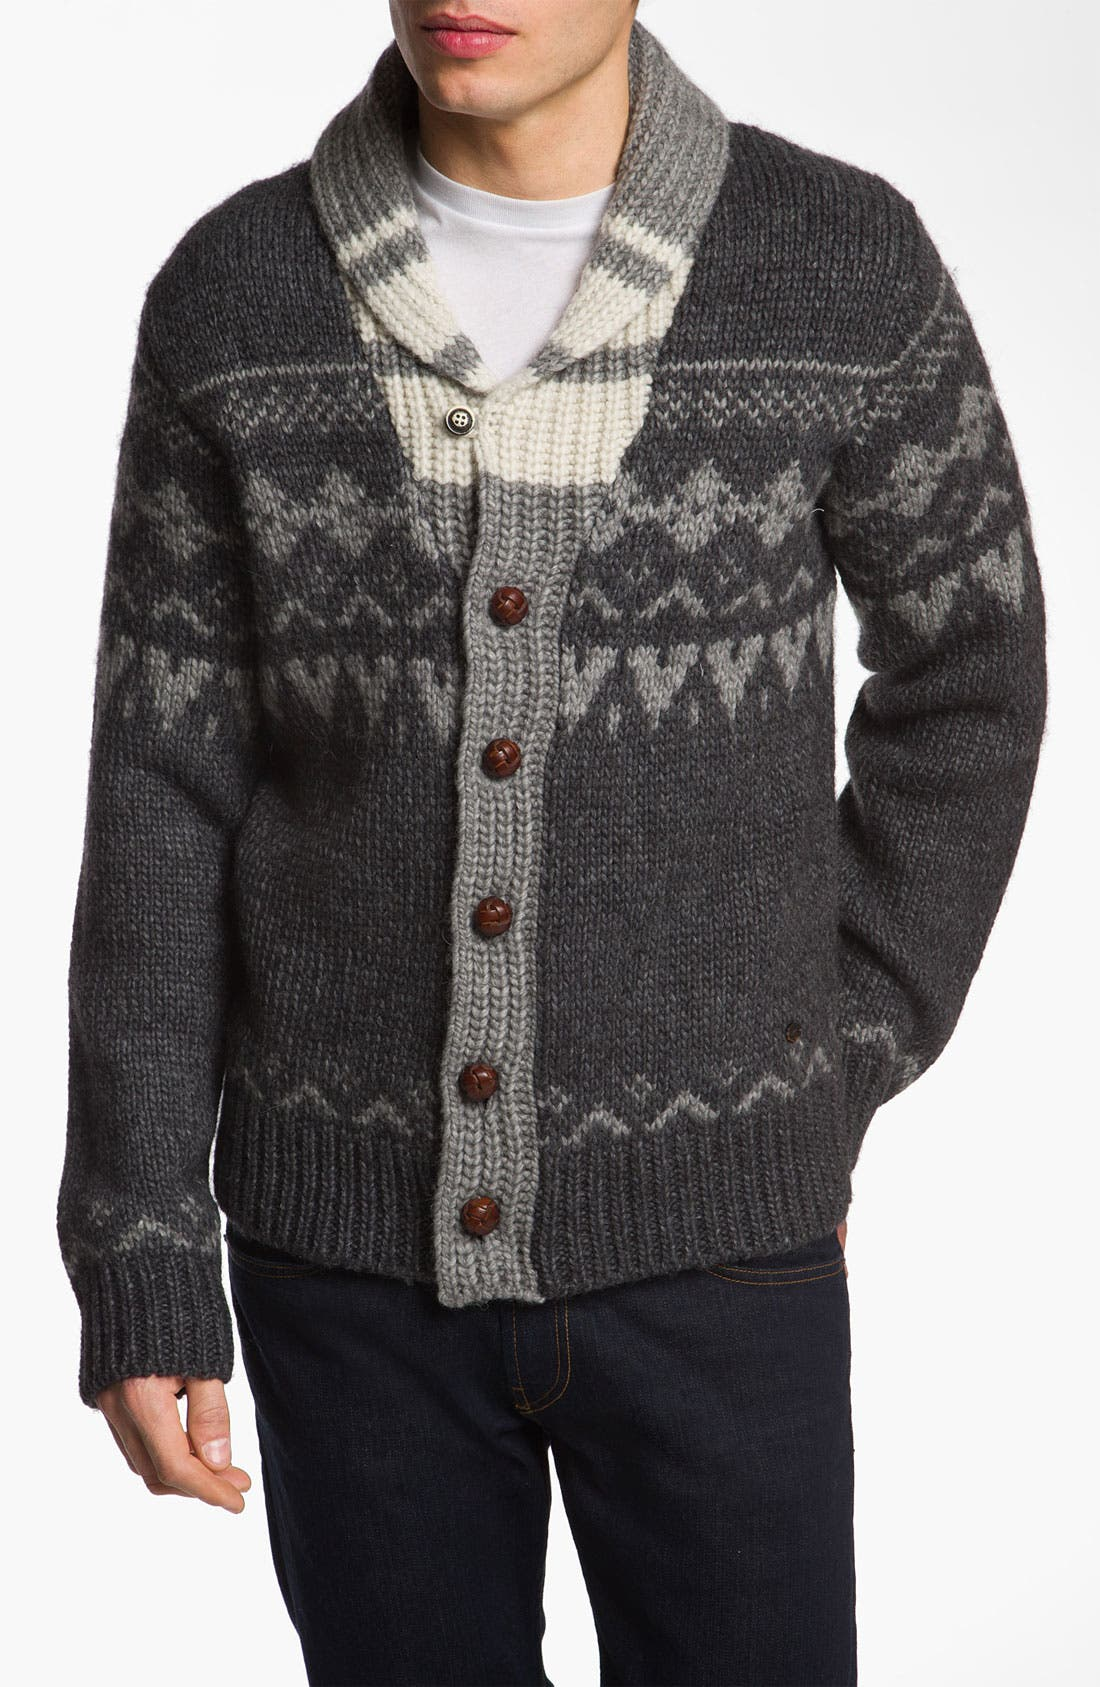 Alternate Image 1 Selected - Woolrich John Rich 'Trapper Peak' Shawl Collar Cardigan